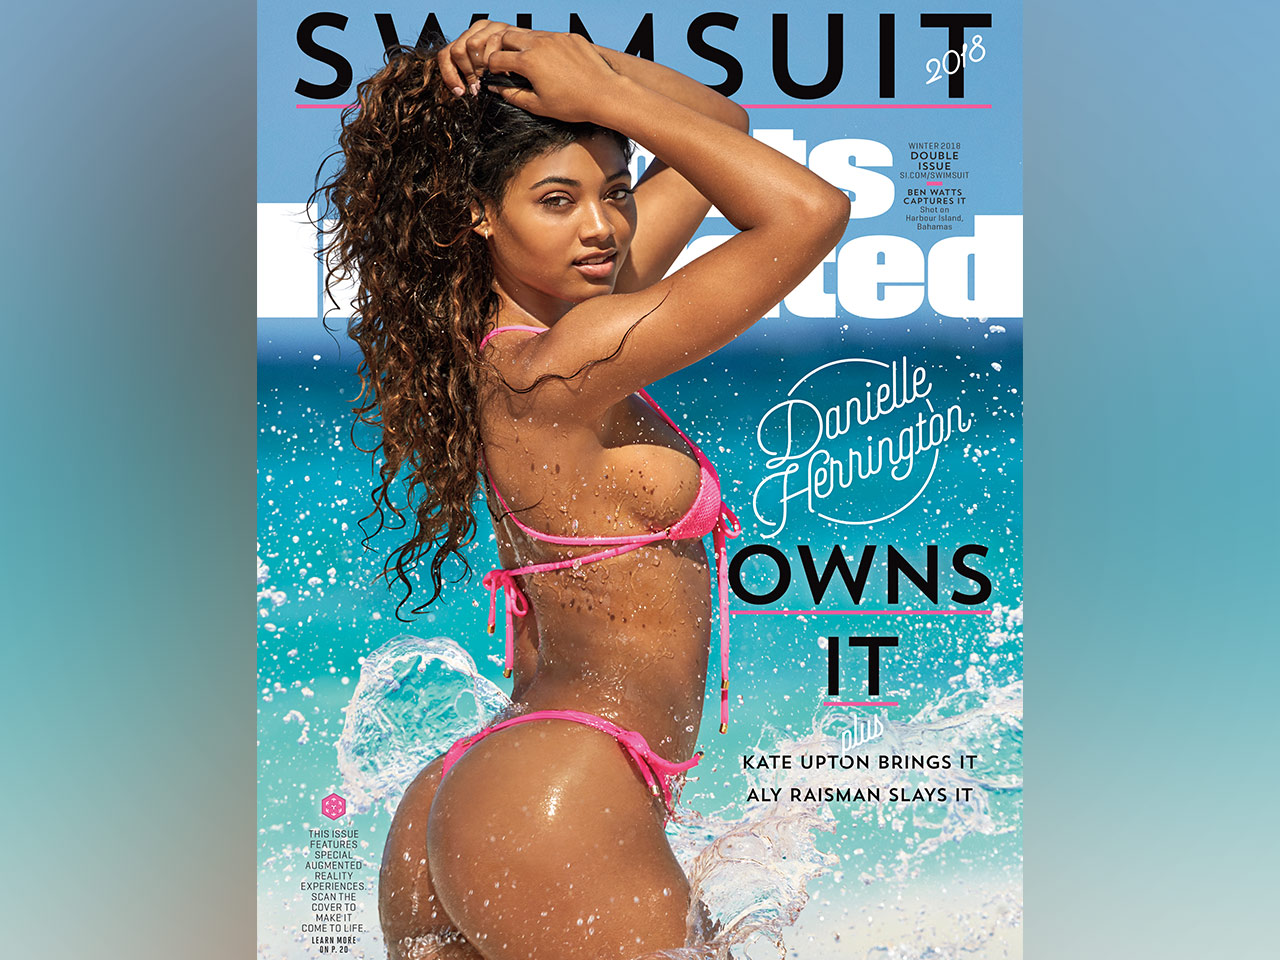 c1b77f626c2 9 stunning photos of 2018 'Sports Illustrated' Swimsuit Issue cover model  Danielle Herrington | Muscle & Fitness